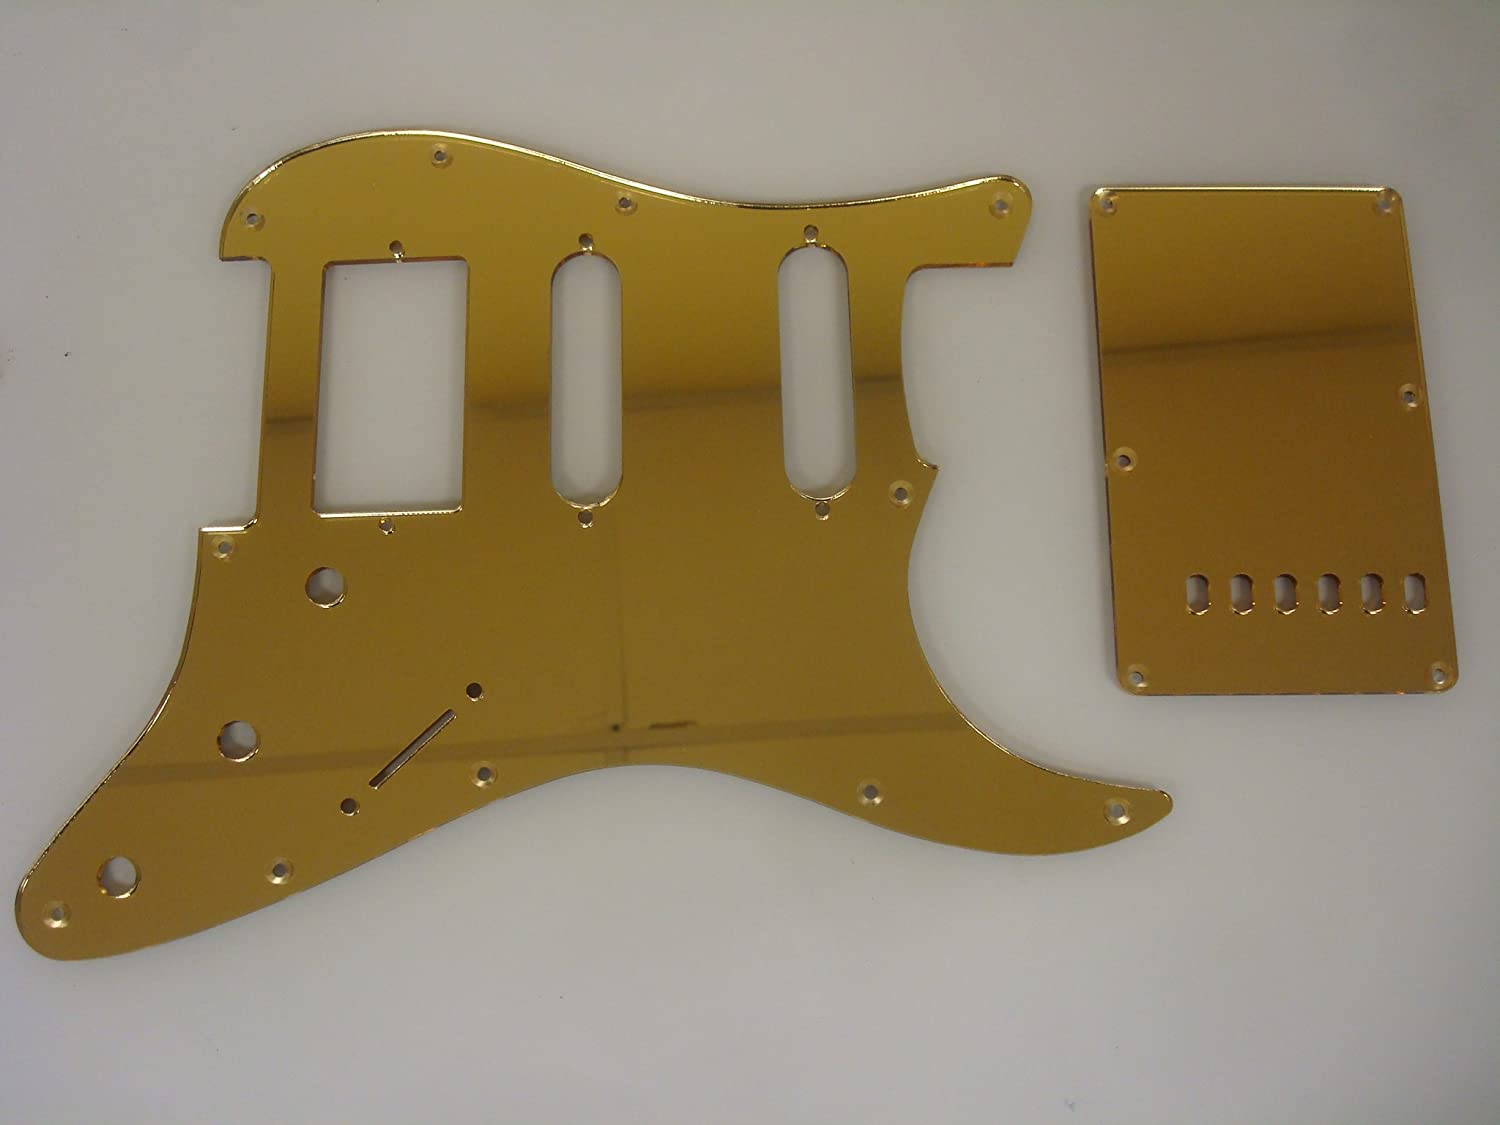 New popularity HSS Gold Mirror Pickguard Set Strat Fender Stratocaster Fits Direct stock discount